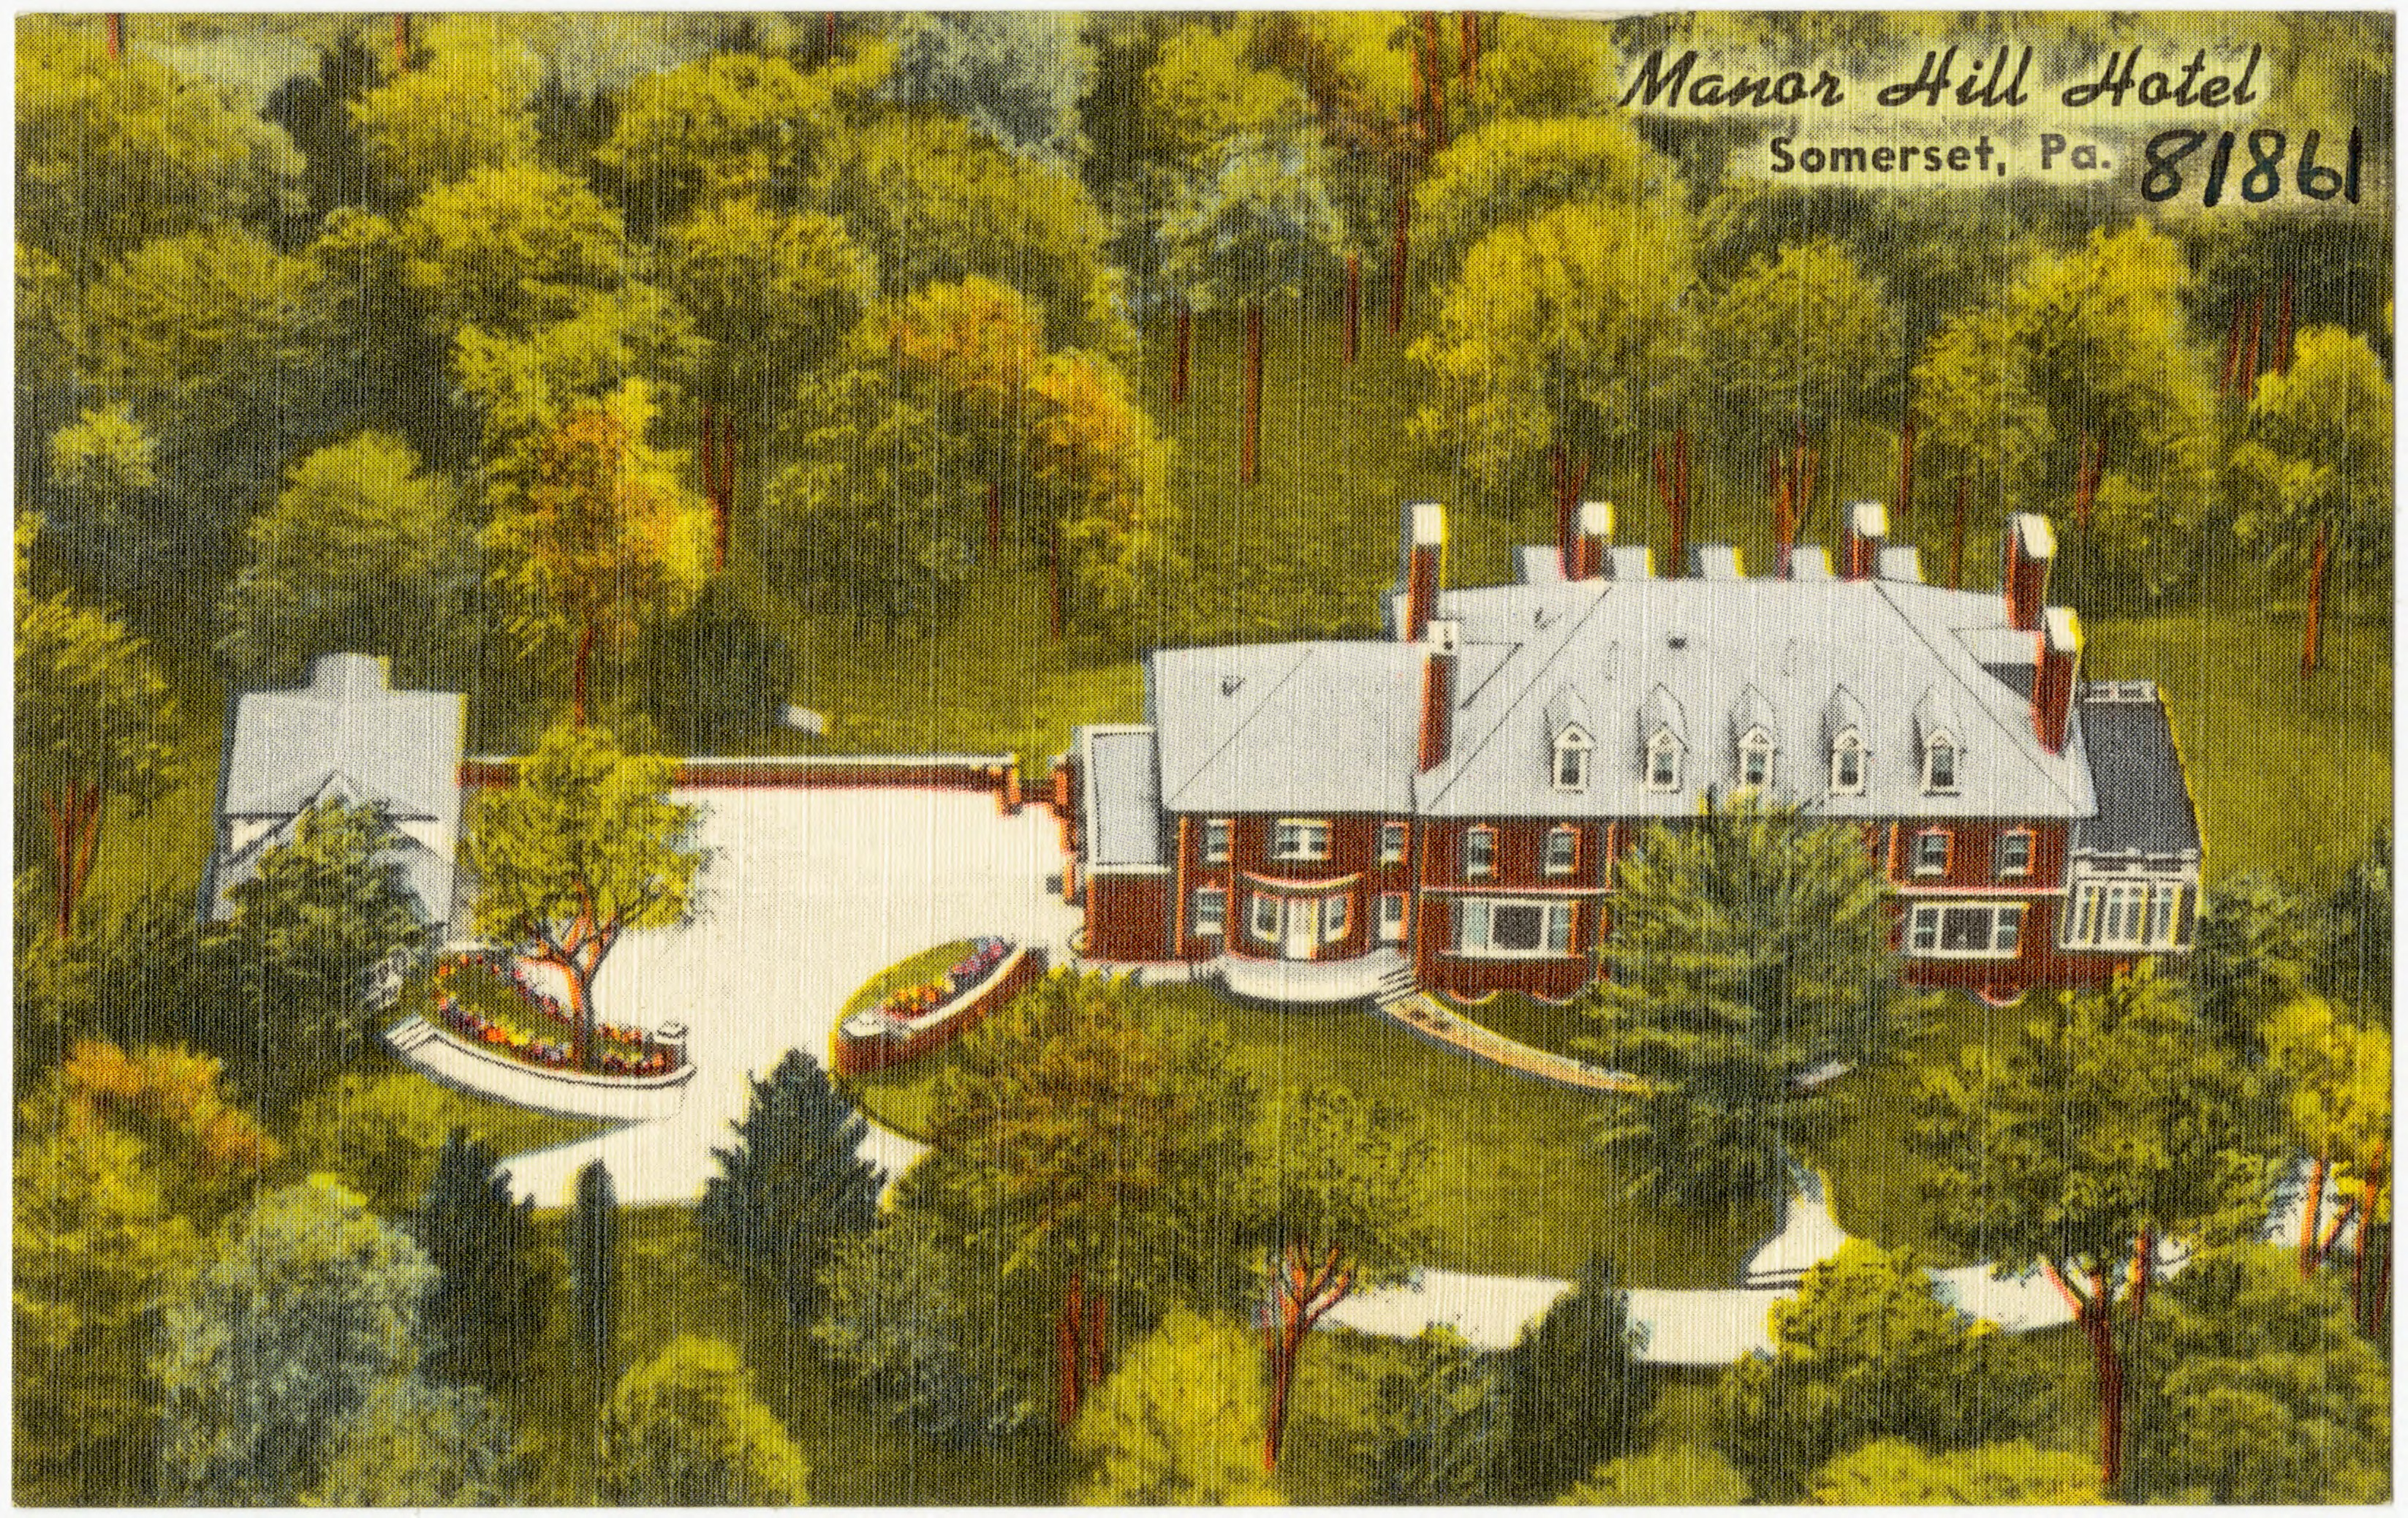 File:Manor Hill Hotel, Somerset, Pa (81861) jpg - Wikimedia